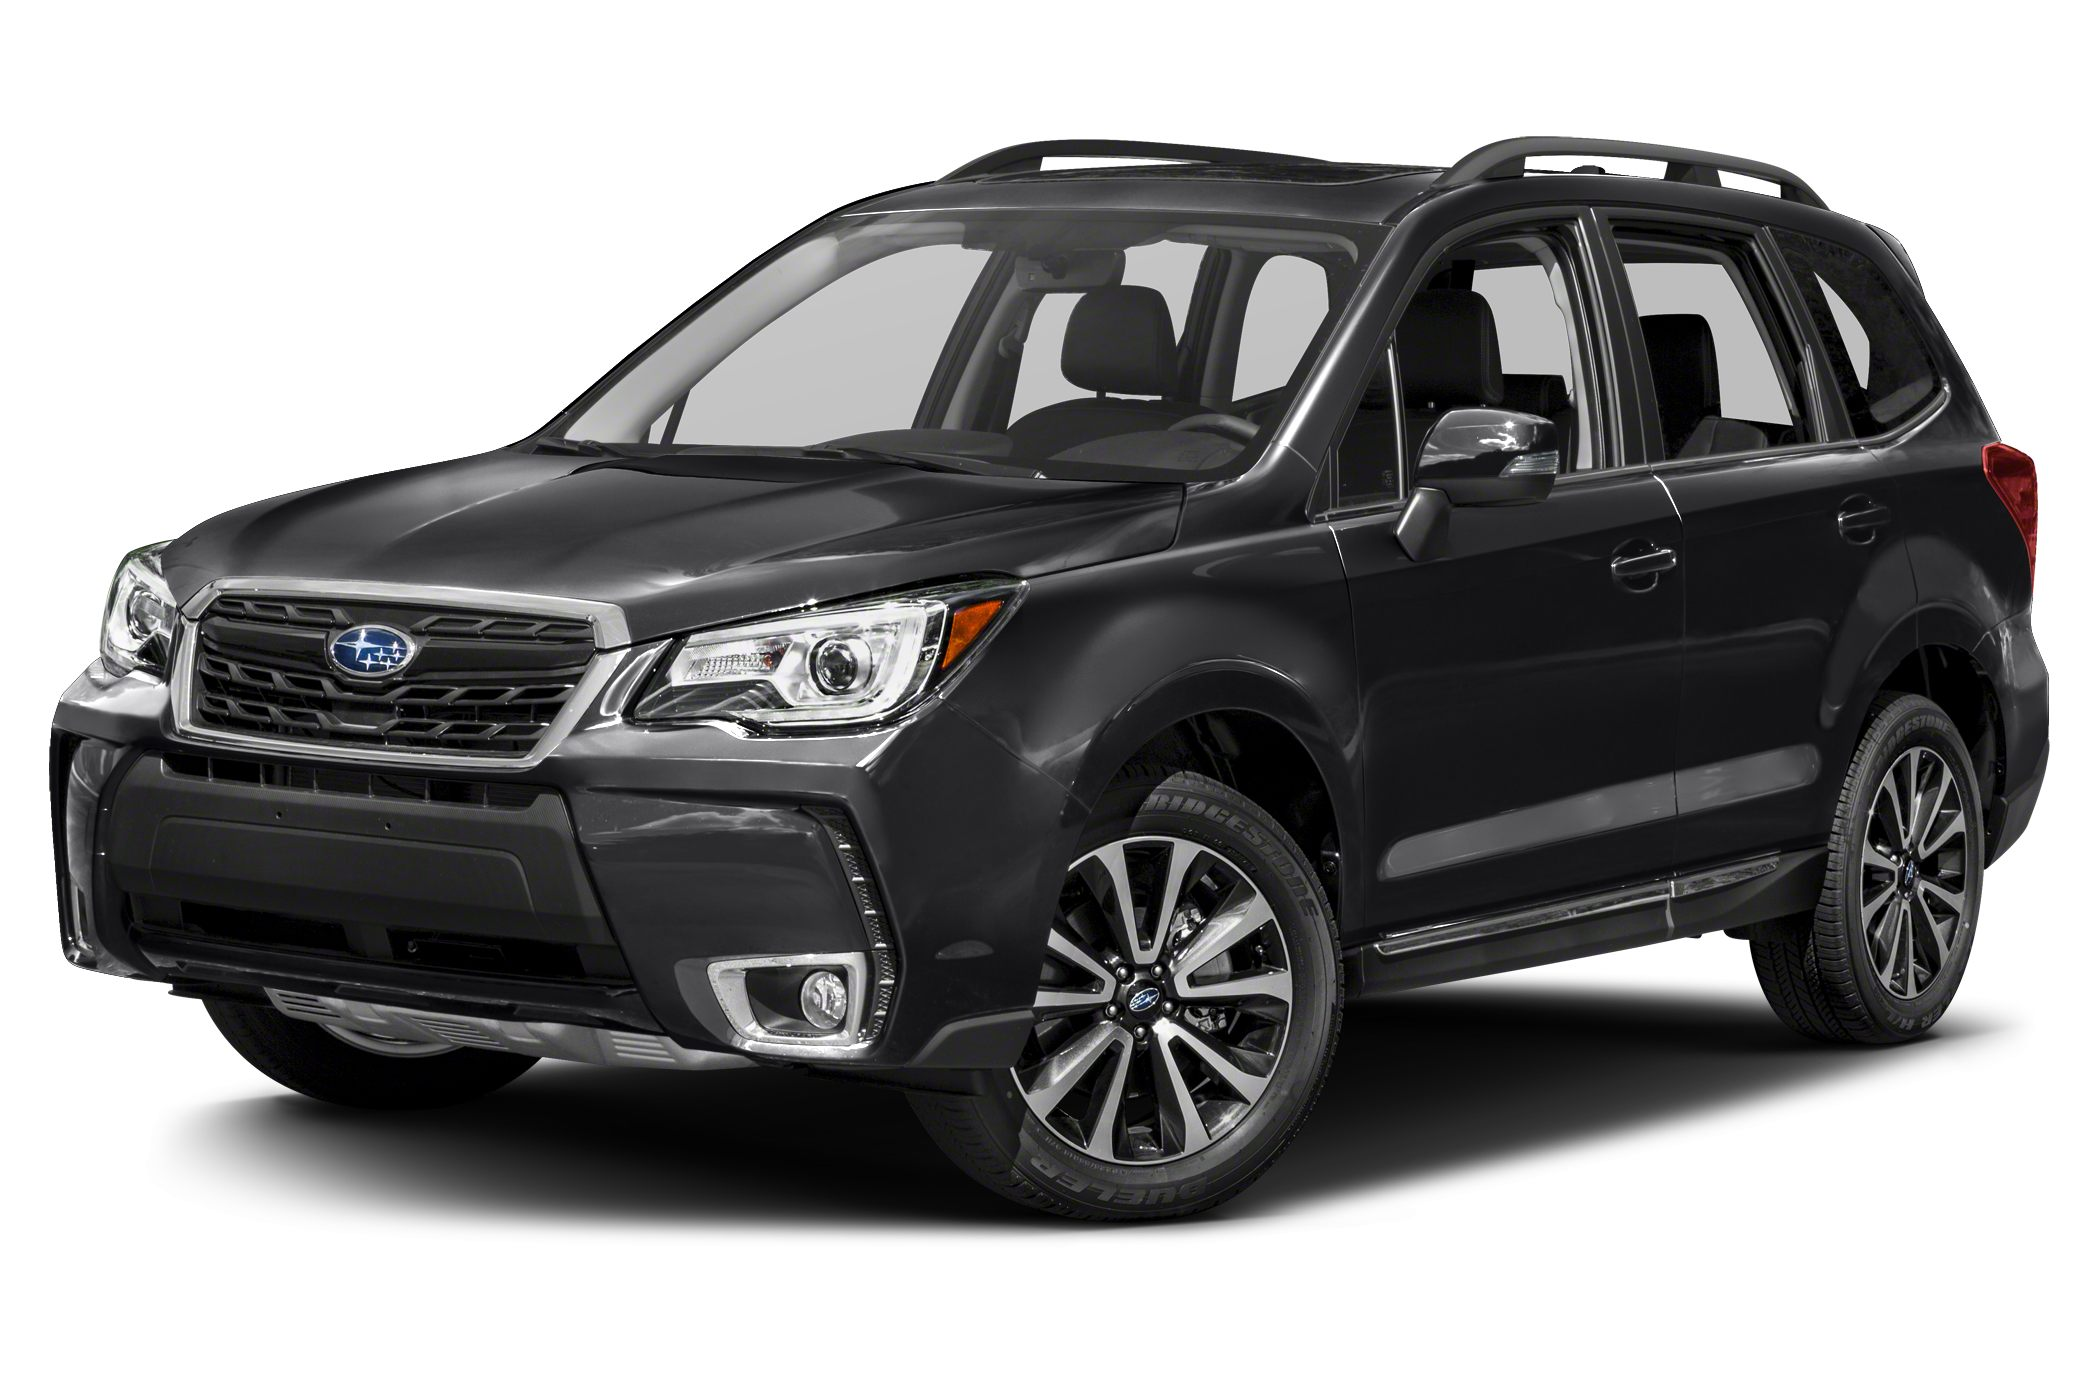 2018 Subaru Forester 2.0XT Touring 4dr All-wheel Drive